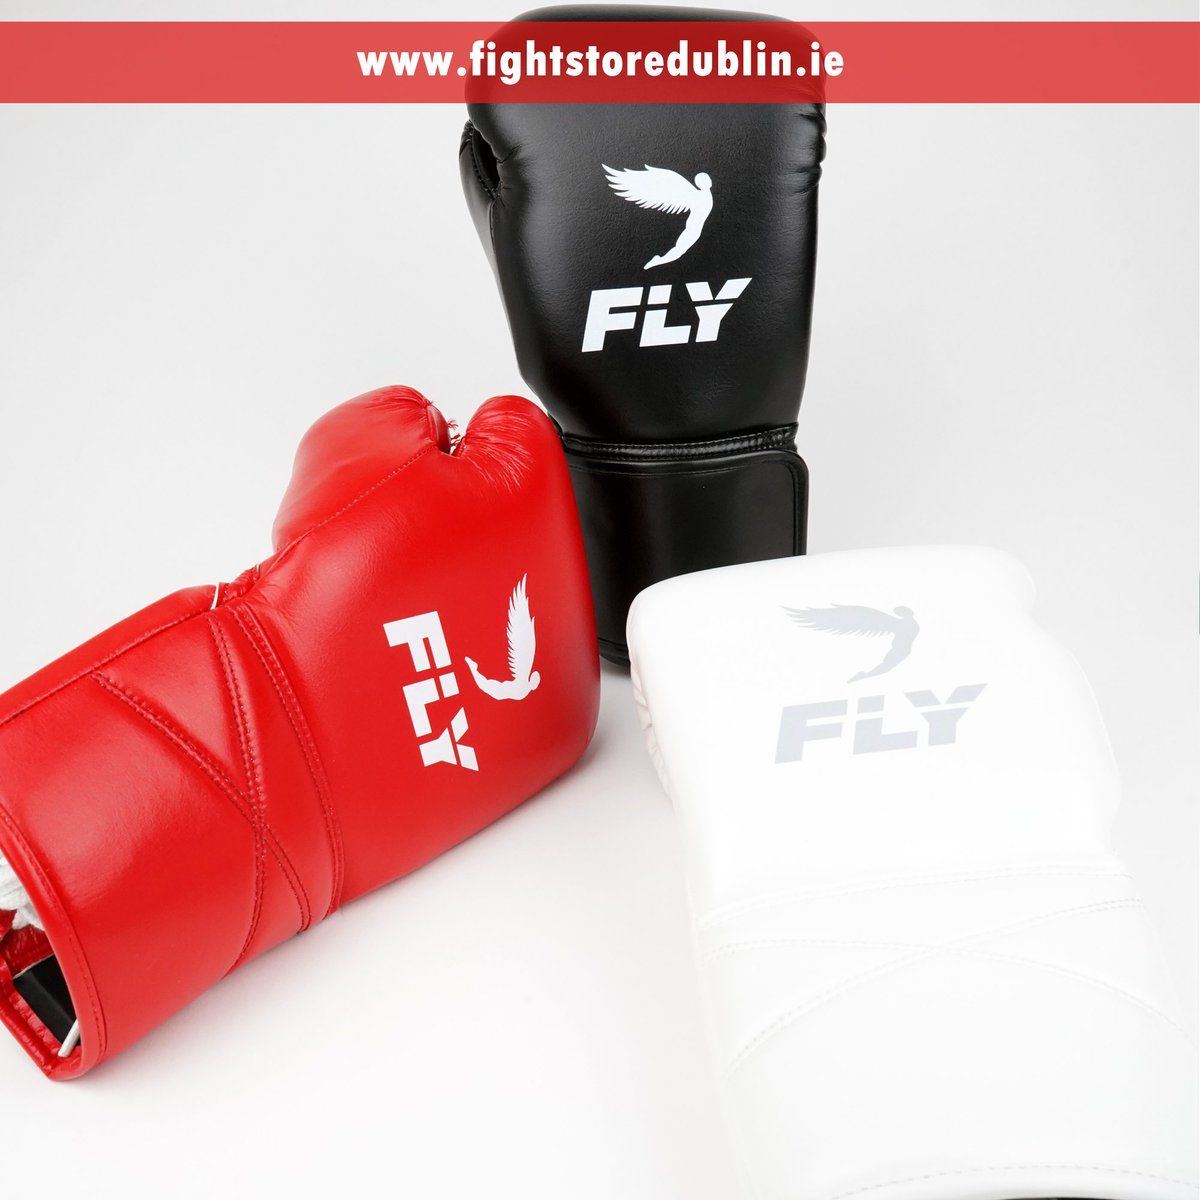 COMPETITION! To celebrate our new partnership with #fly boxing gear, we are giving away a free pair of FLY boxing gloves worth €220. To enter: - share this post - tag 3 training partners  - tell us what colour and size you would like to win. We will pick one lucky winner July 31 https://t.co/XIDMA2Wme5